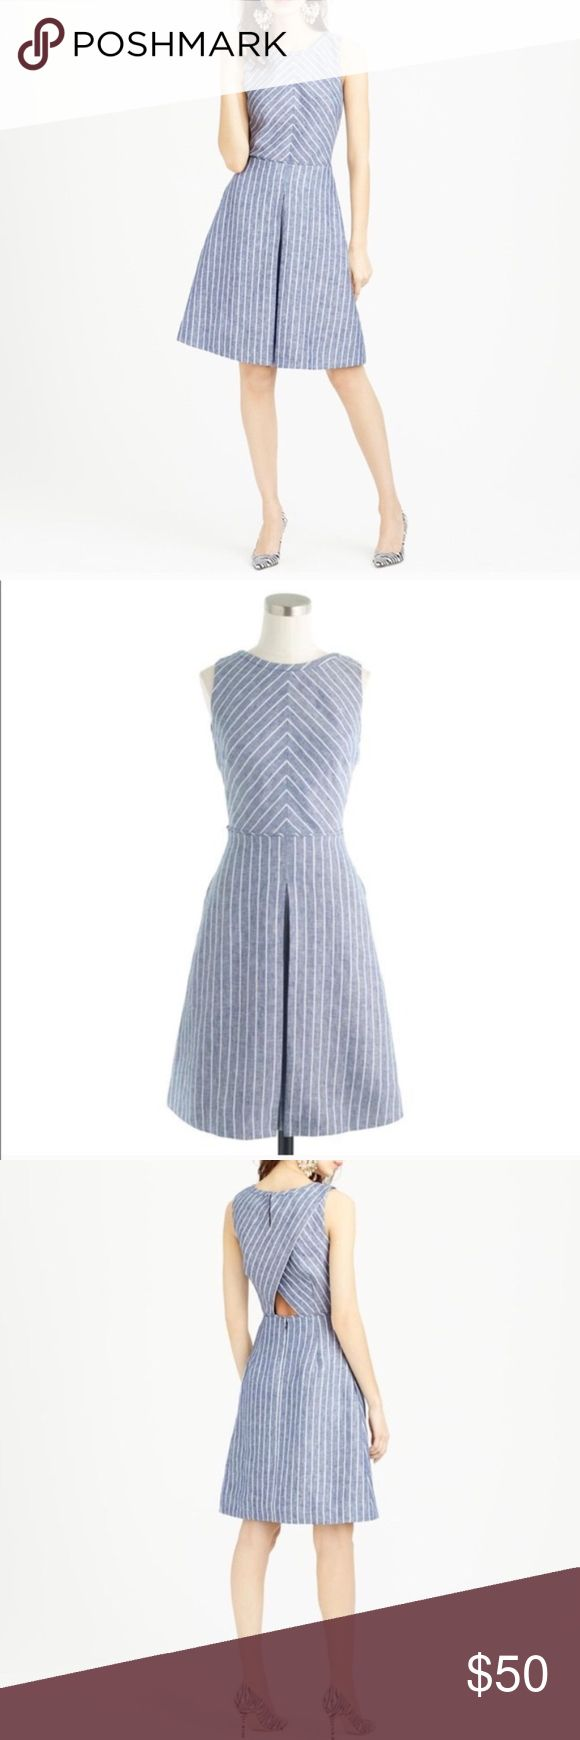 J.Crew Chevron Dress  *worn once* Size 0 Super cute chevron flair dress. Adorable cut out in the back that shows a little while still staying classy! Worn once to the Byron Nelson. The easy stripes, functional pockets and subtle cutout in the back make this number ideal for day-to-night wear all summer long. Pair it with flat sandals and a casual tote for errands, barbecues, and other daytime functions, or wear it with heeled espadrilles and a neutral clutch for a night out! J. Crew Dresses